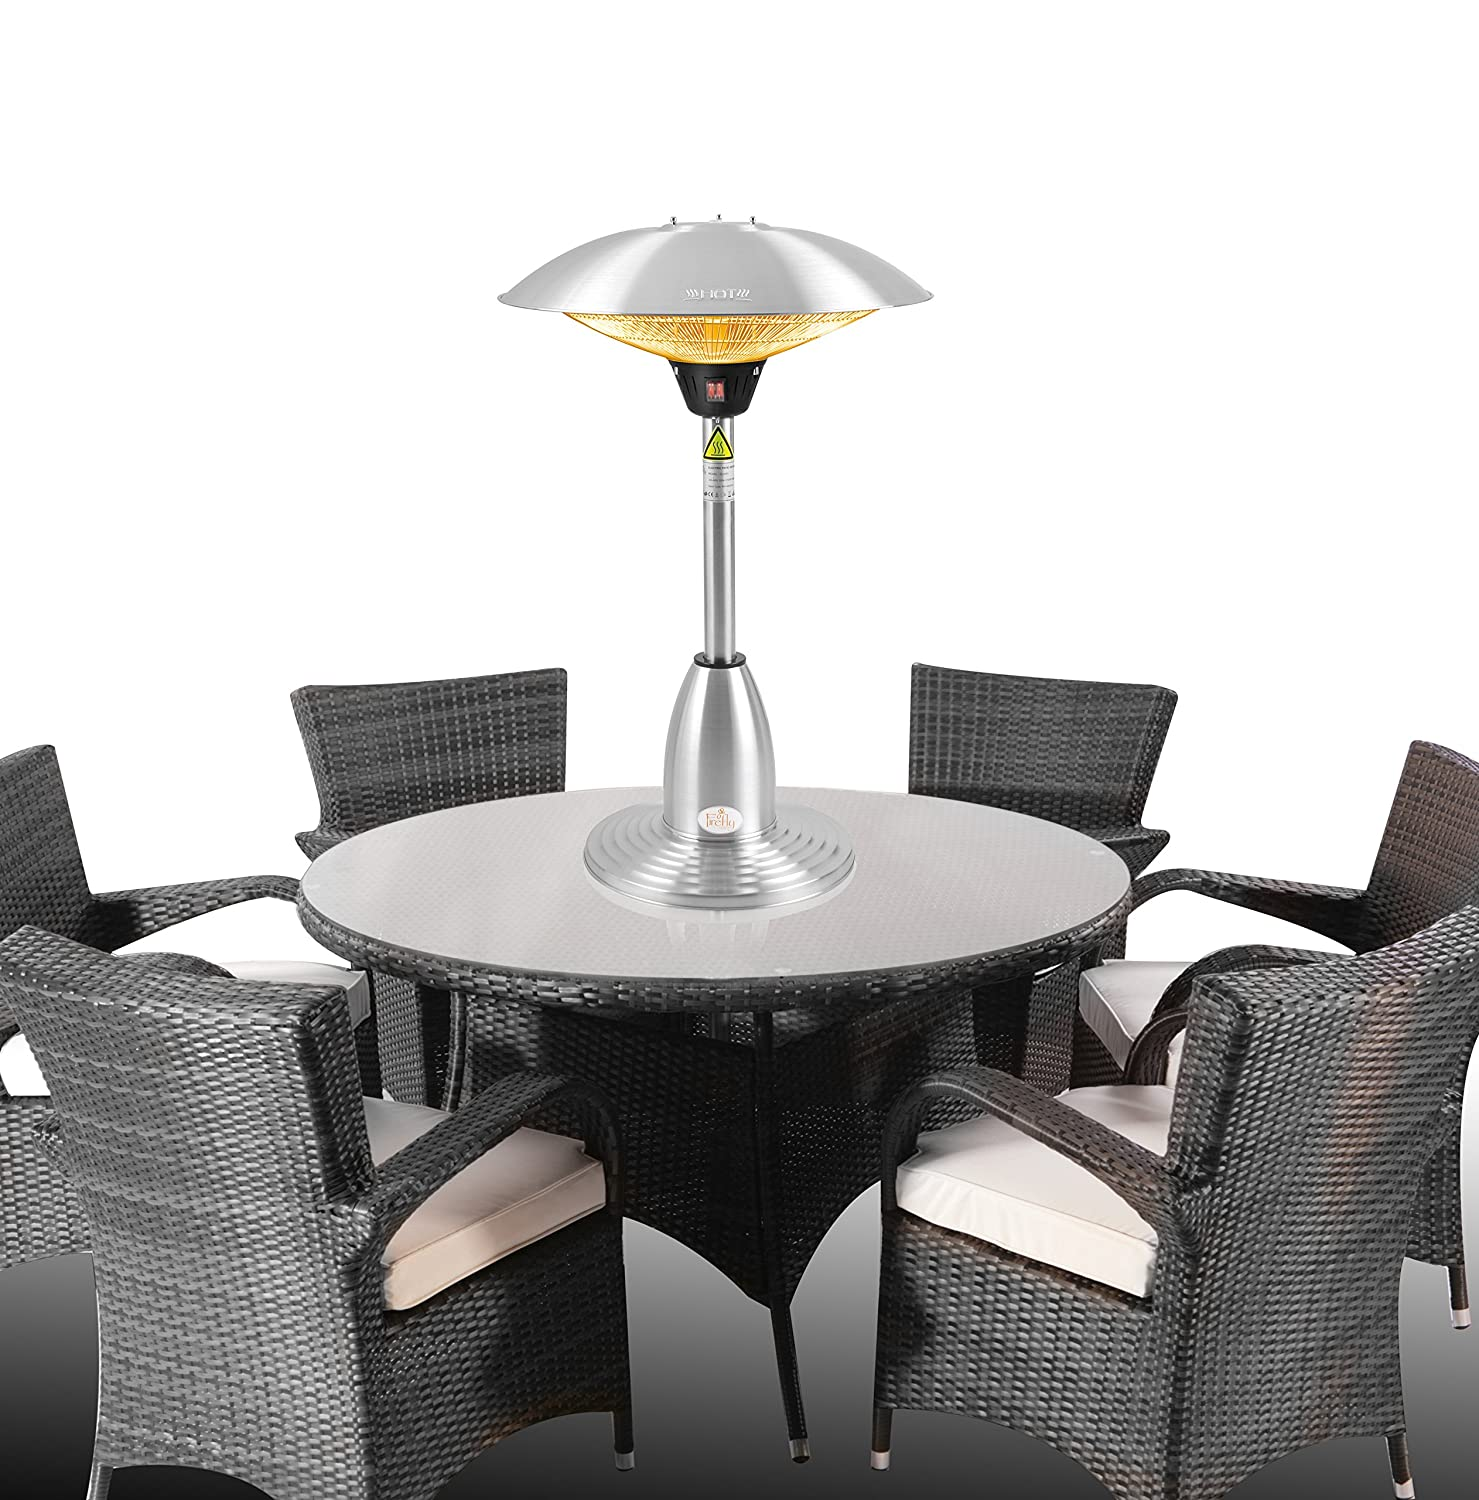 Firefly 2.1kW Stainless Steel Halogen Bulb Infrared Electric Table Top Outdoor Patio Heater with 3 Heat Settings Primrose